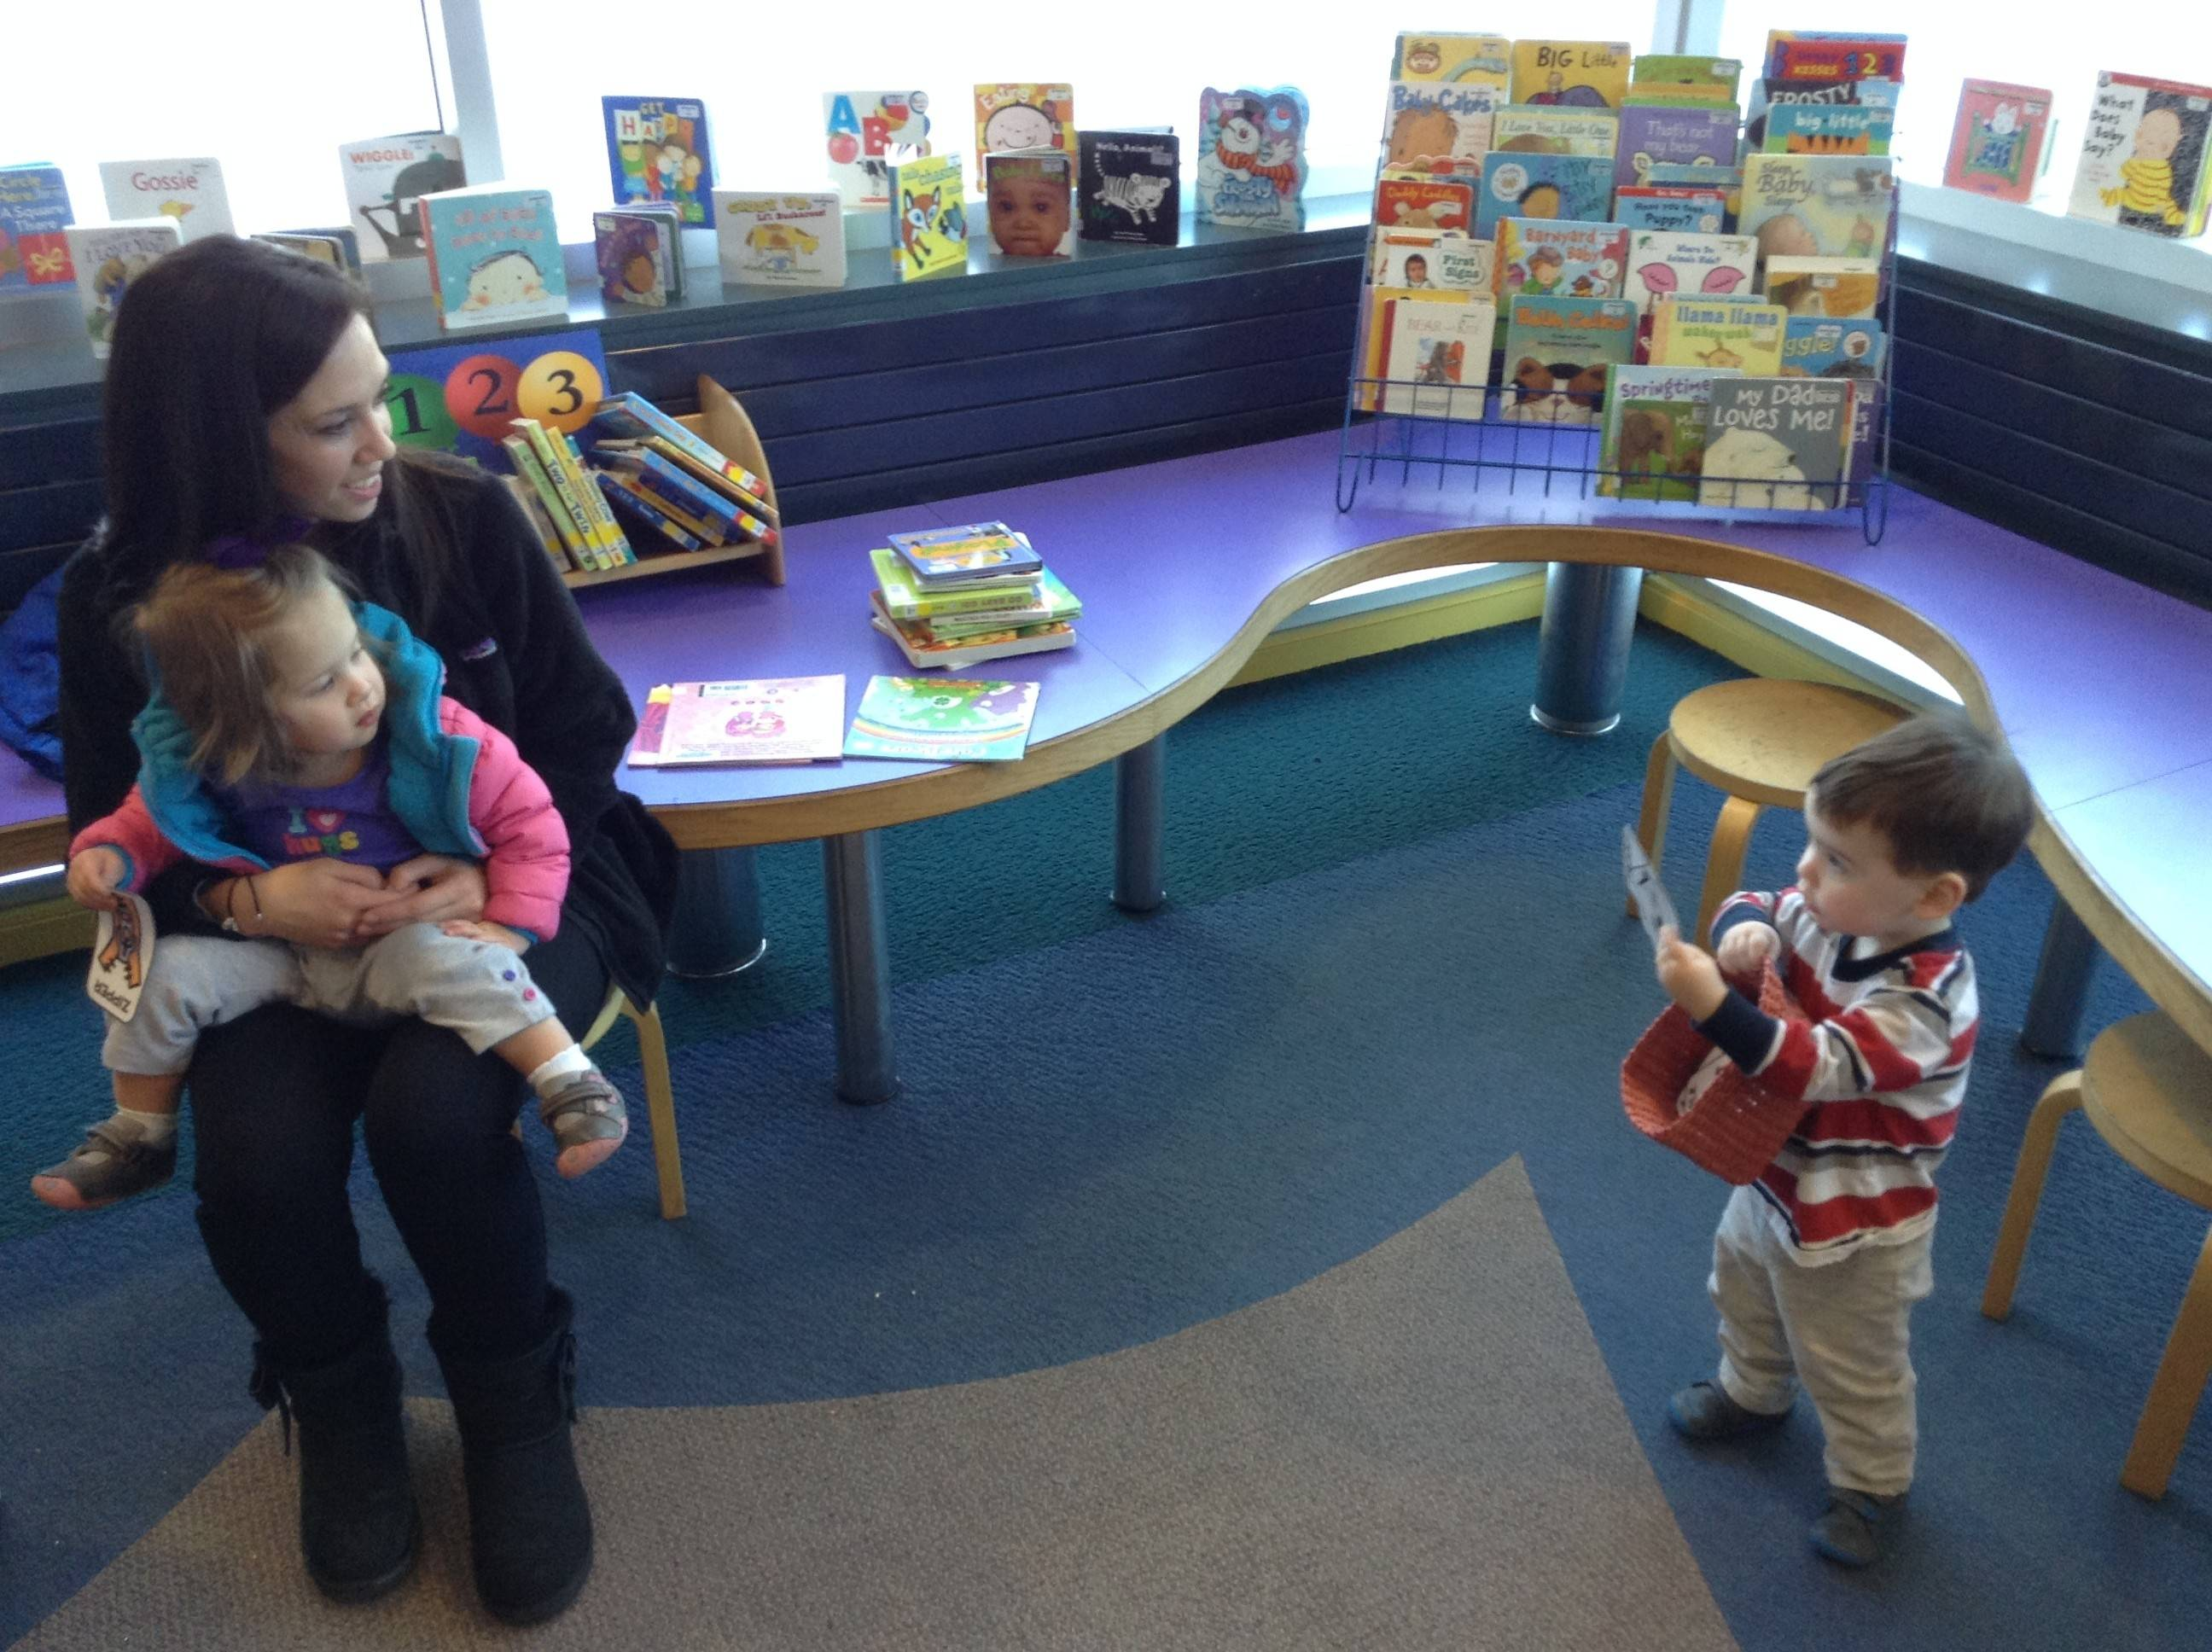 Wauconda Area Library patron Cara Silverman, with her children Mackenzie and Mason, said she is excited about proposed renovations in the children's department.